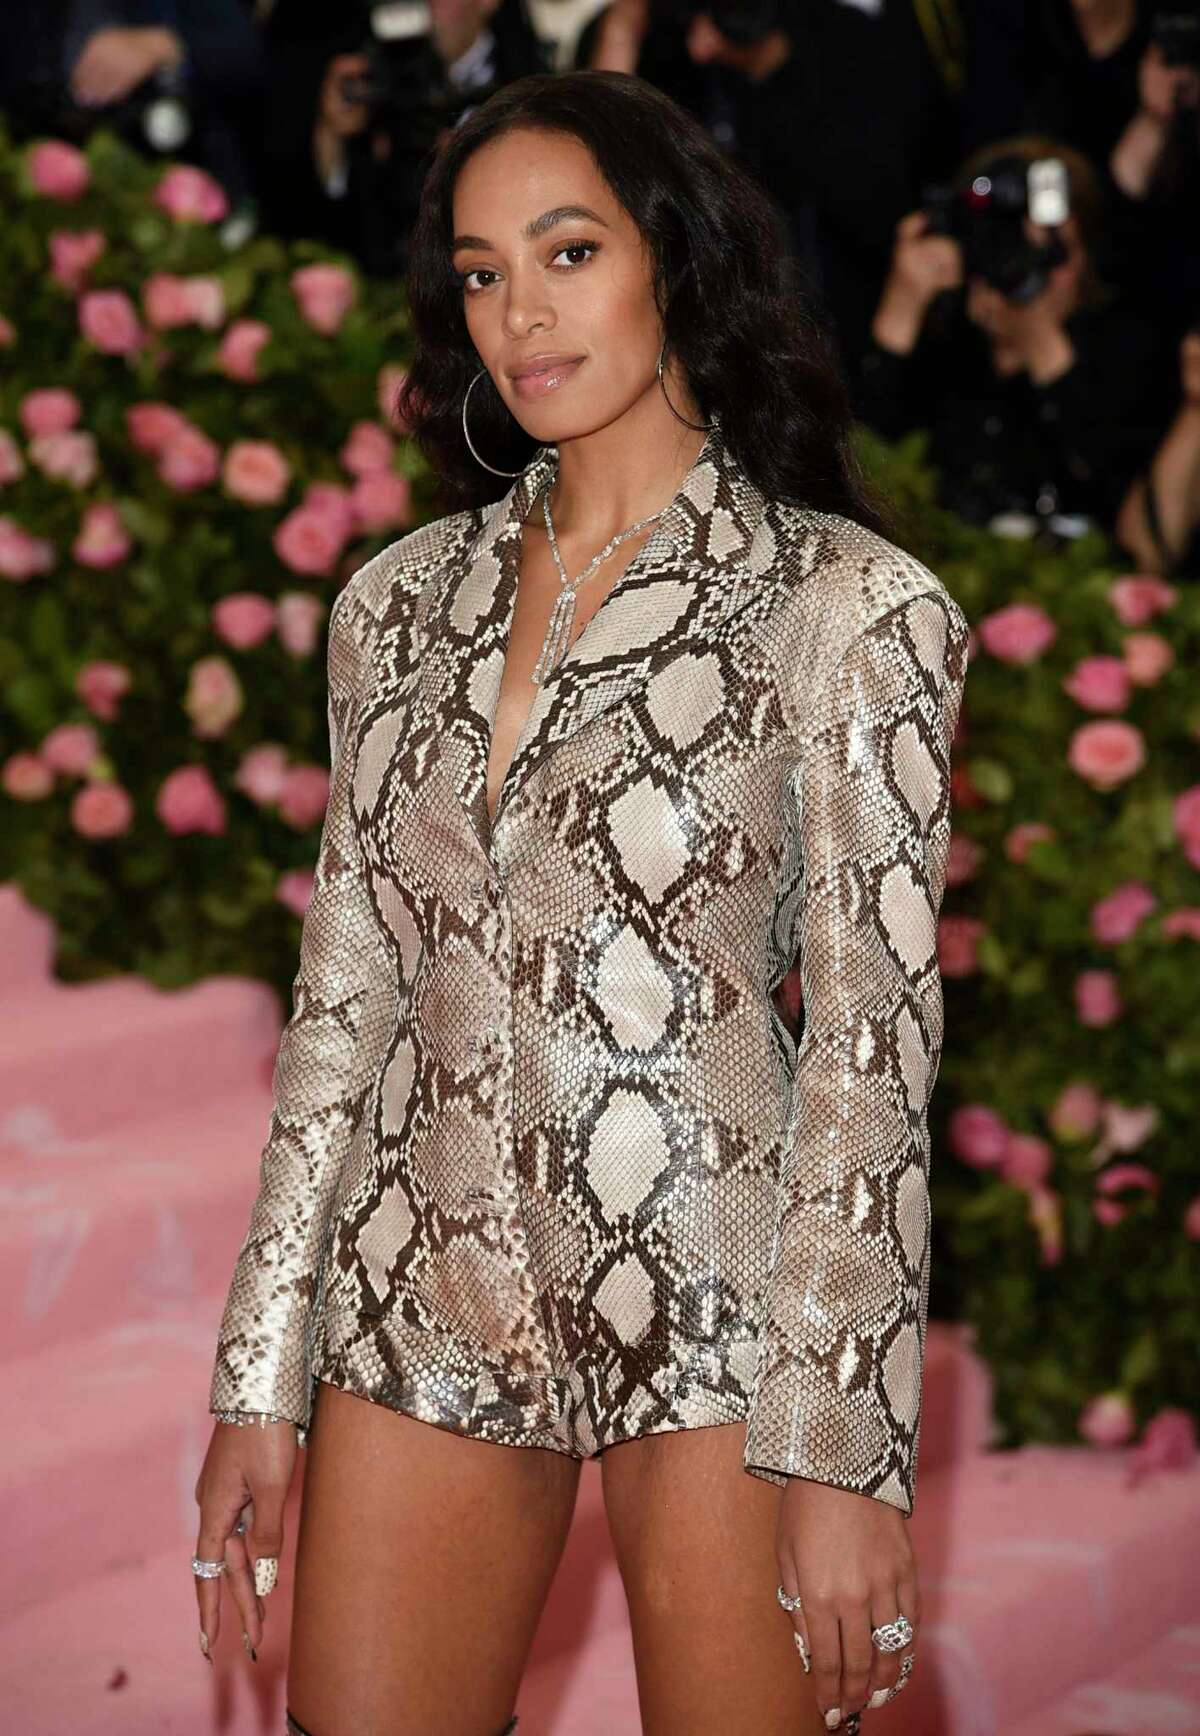 FILE - This May 6, 2019 file photo shows Solange Knowles at The Metropolitan Museum of Art's Costume Institute benefit gala in New York. Knowles will be the first recipient of the Lena Horne Prize, to be awarded in a ceremony at New Yorka€™s Town Hall on Feb. 28. (Photo by Evan Agostini/Invision/AP, File)